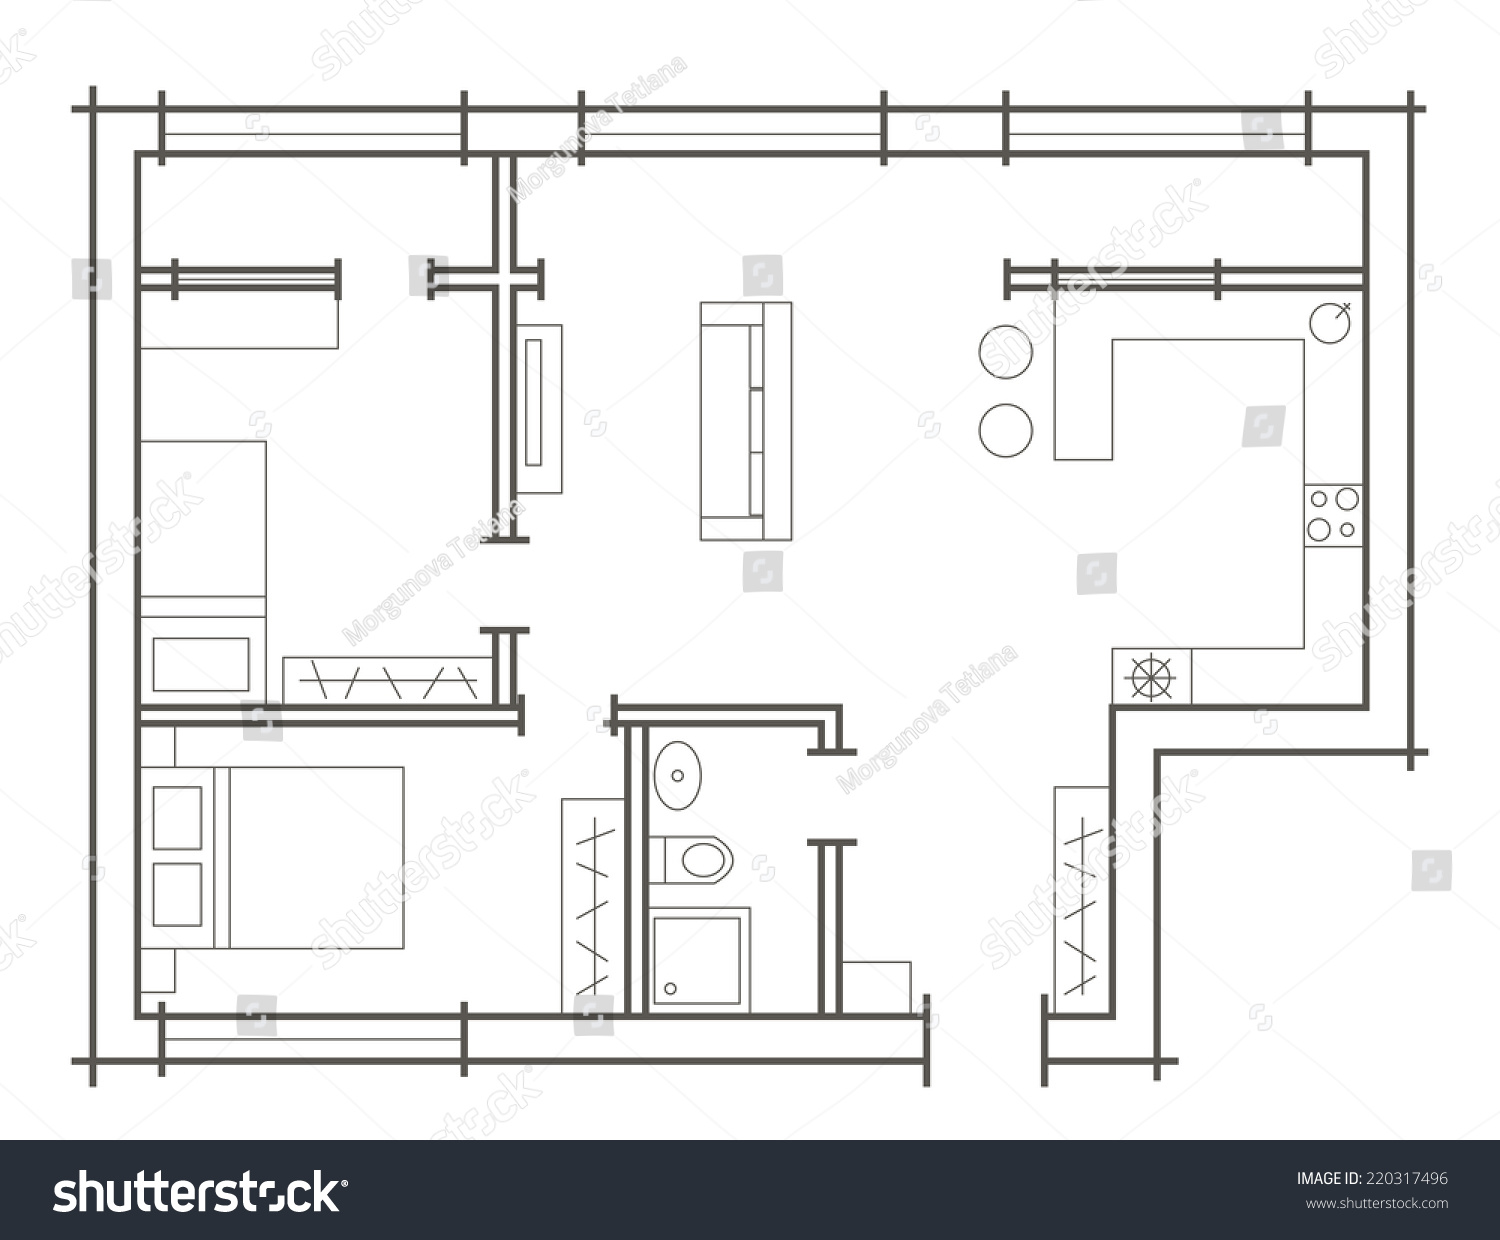 Plan Sketch Of Two Bedroom Apartment